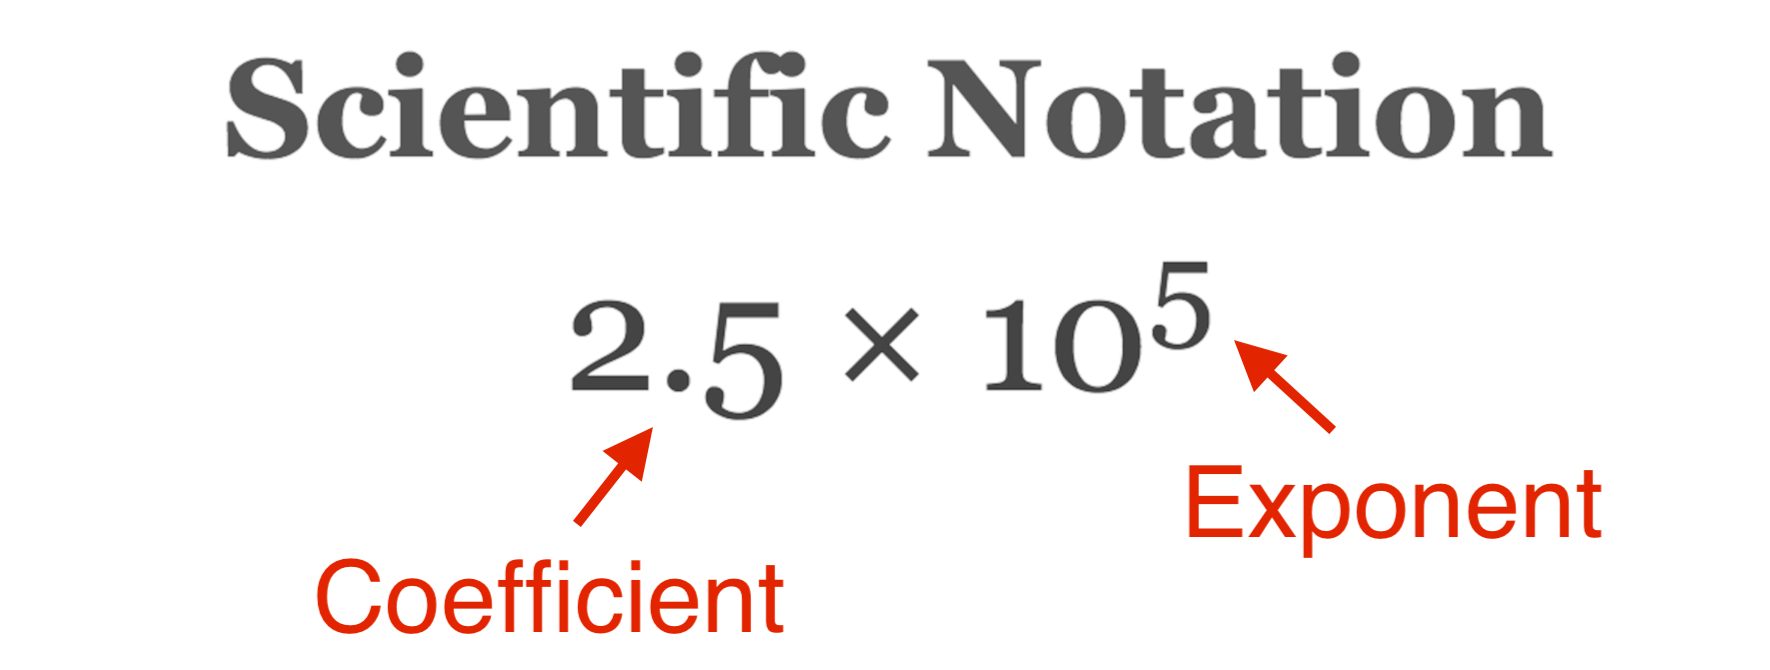 scientific notation formula with callouts on the coefficient and exponent